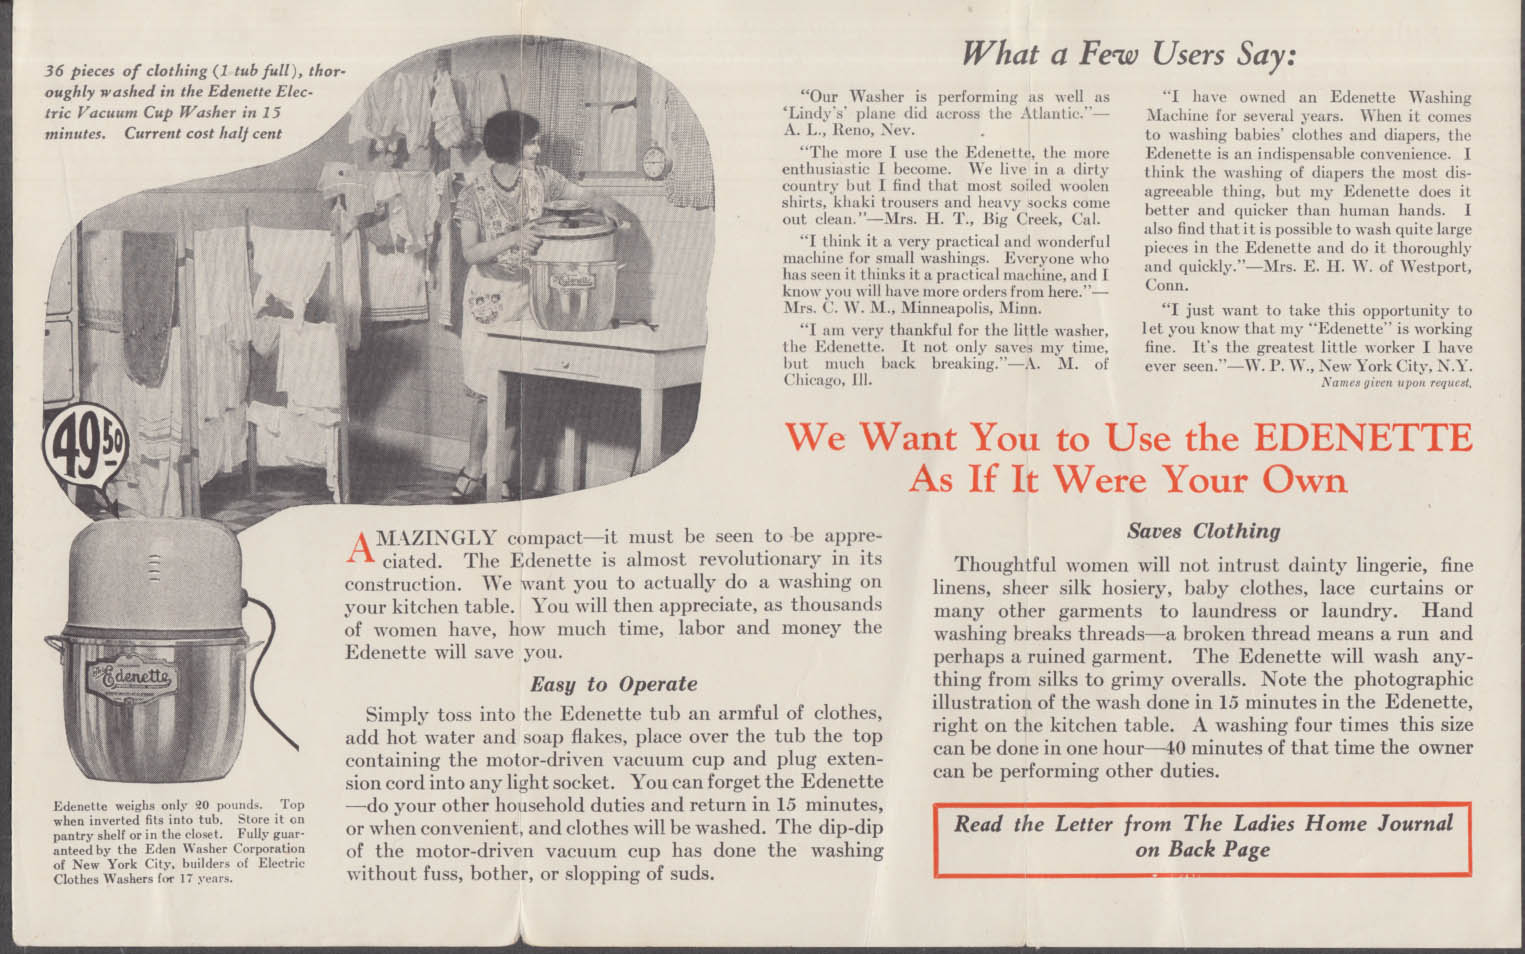 Edenette Electric Washing Machine We're Willing to Trust You folder 1927